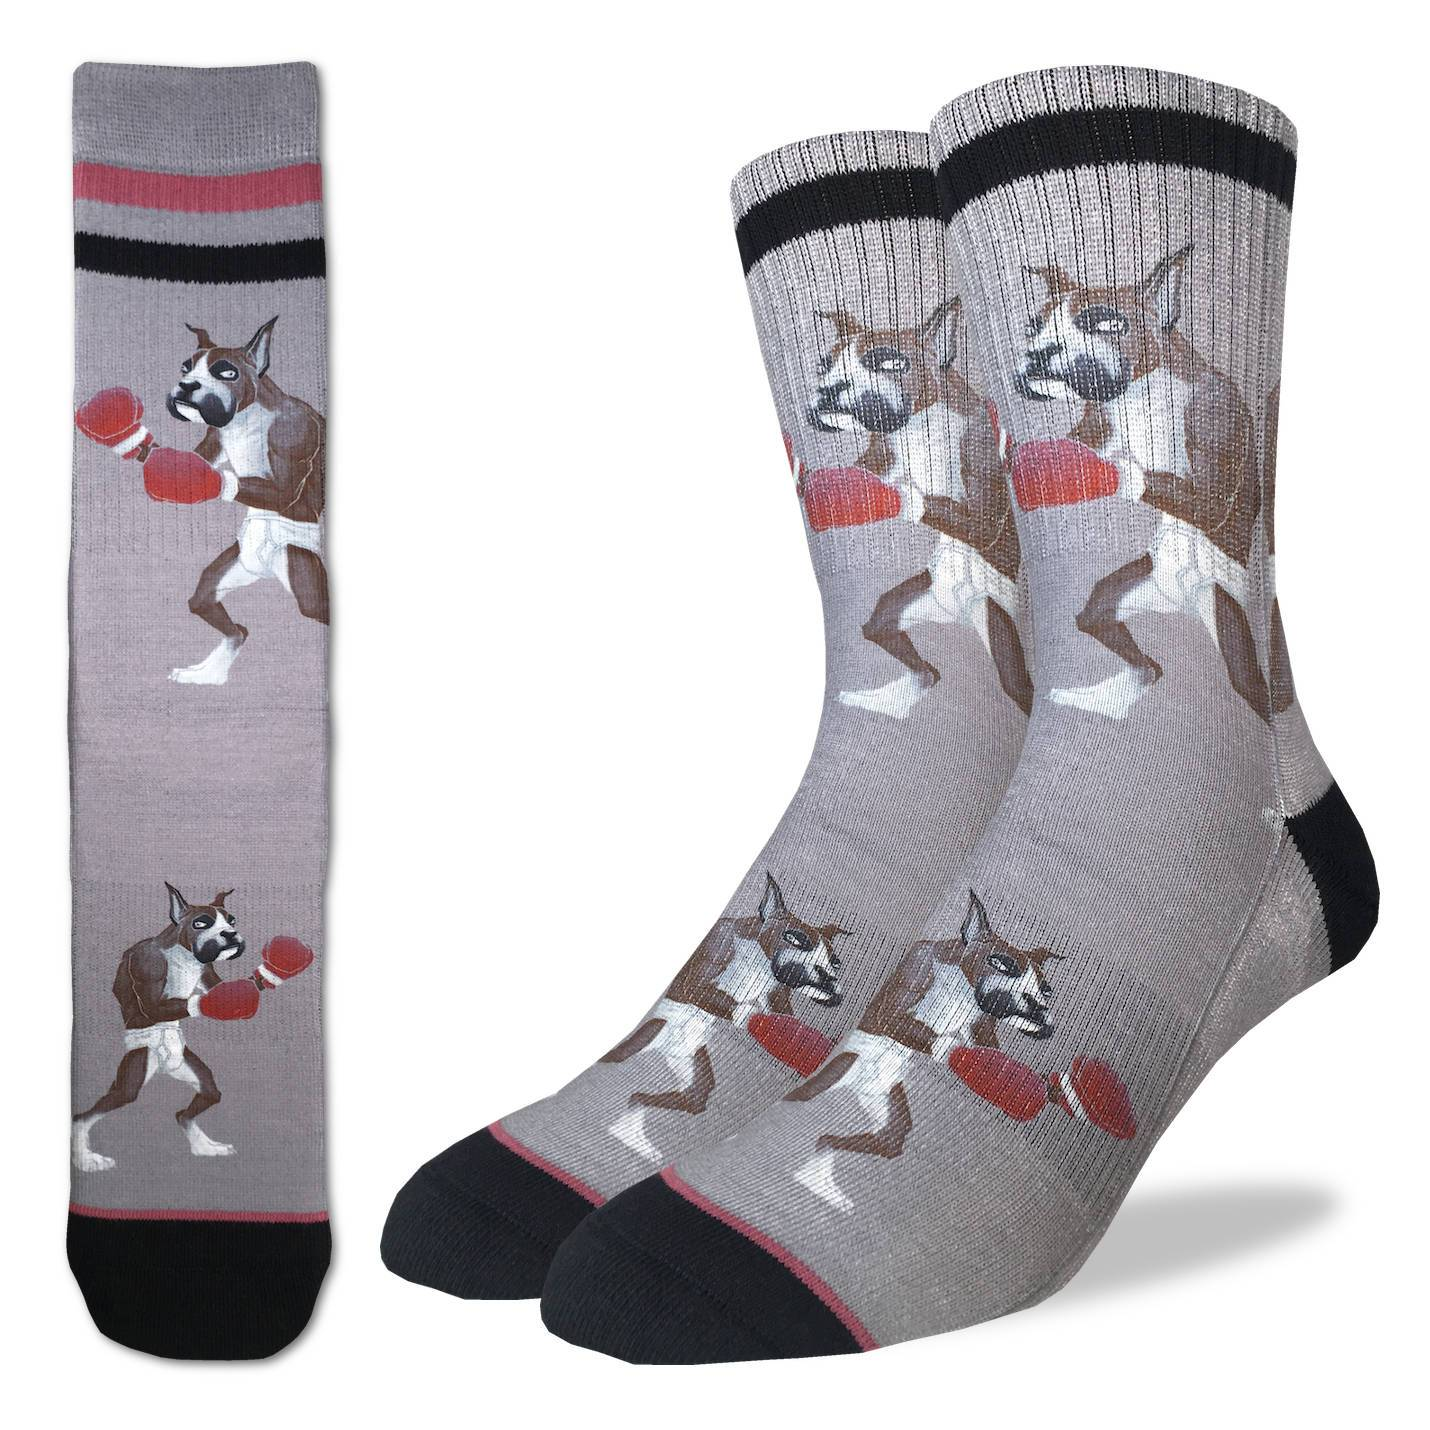 Men's Boxing Boxer Socks - Good Luck Sock